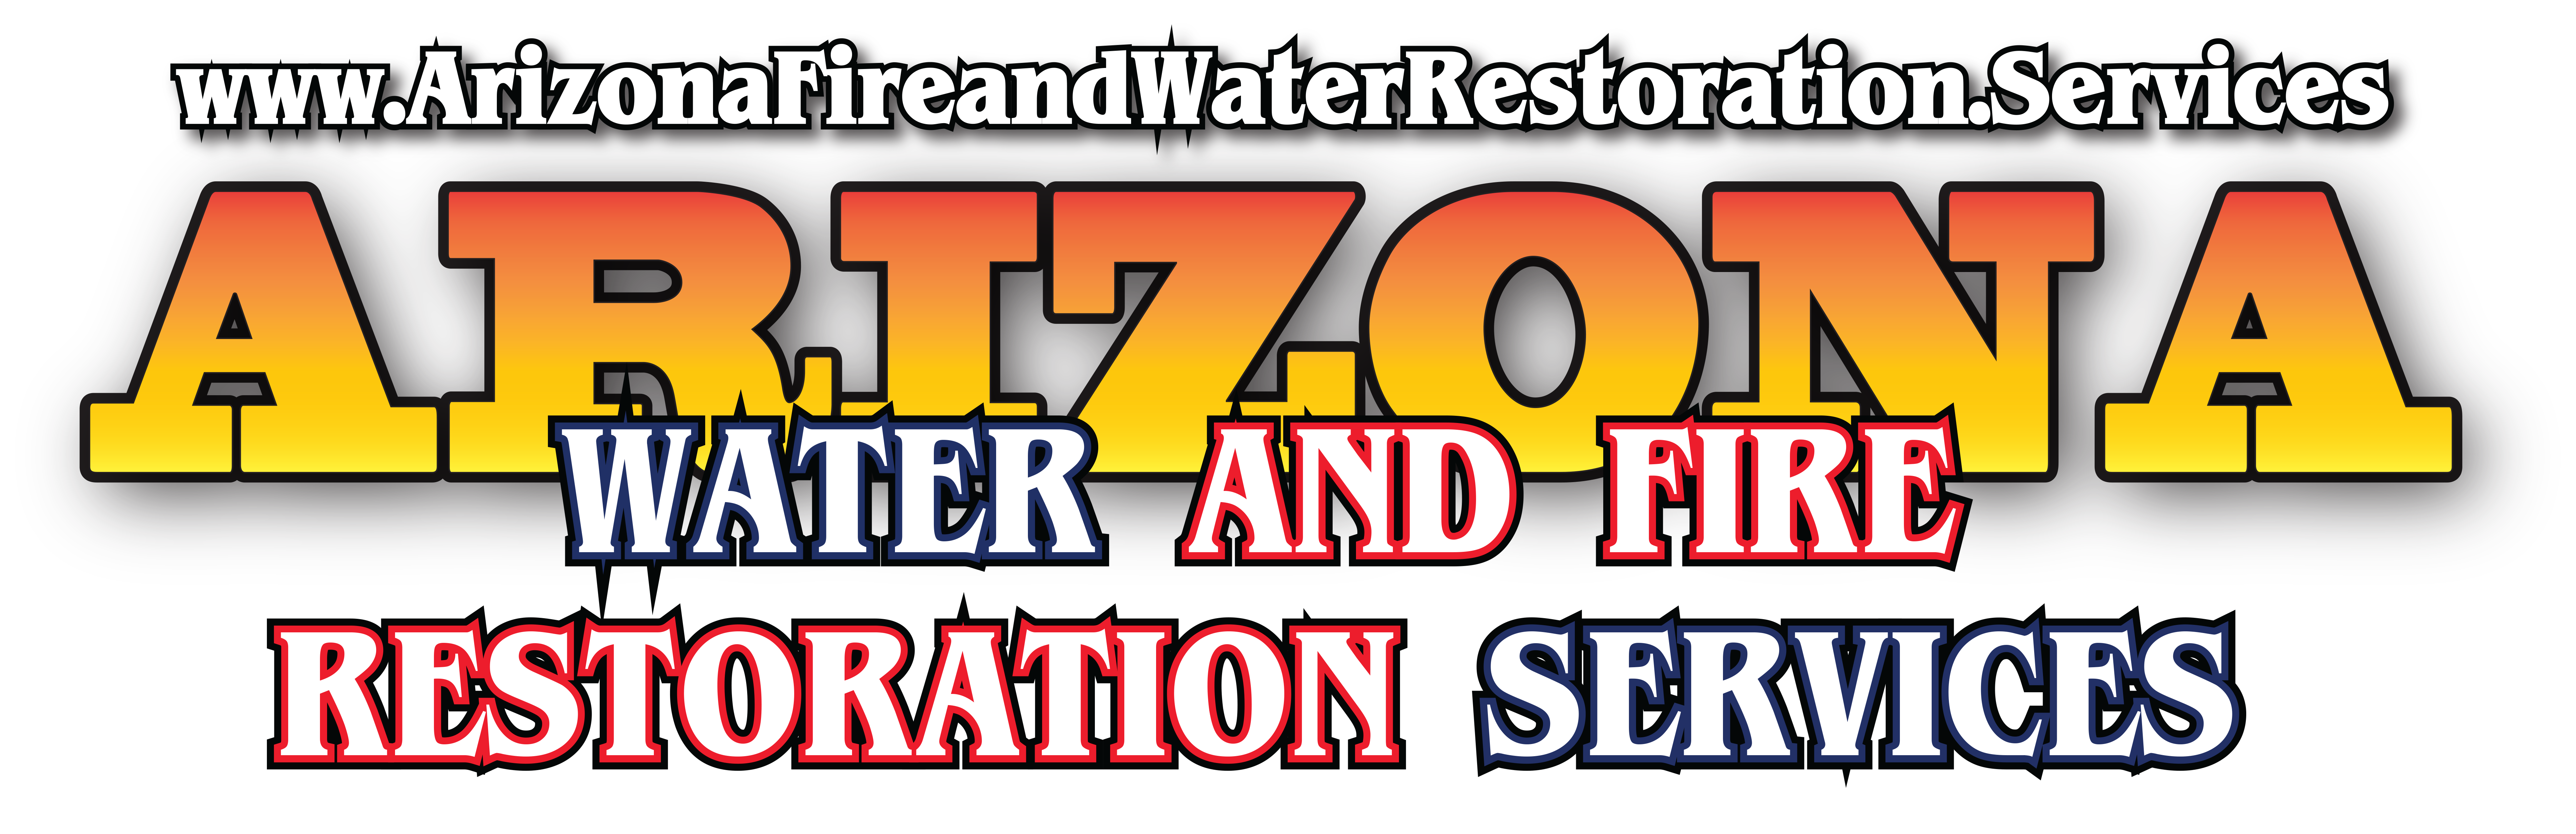 Arizona Water and Fire Restoration Services